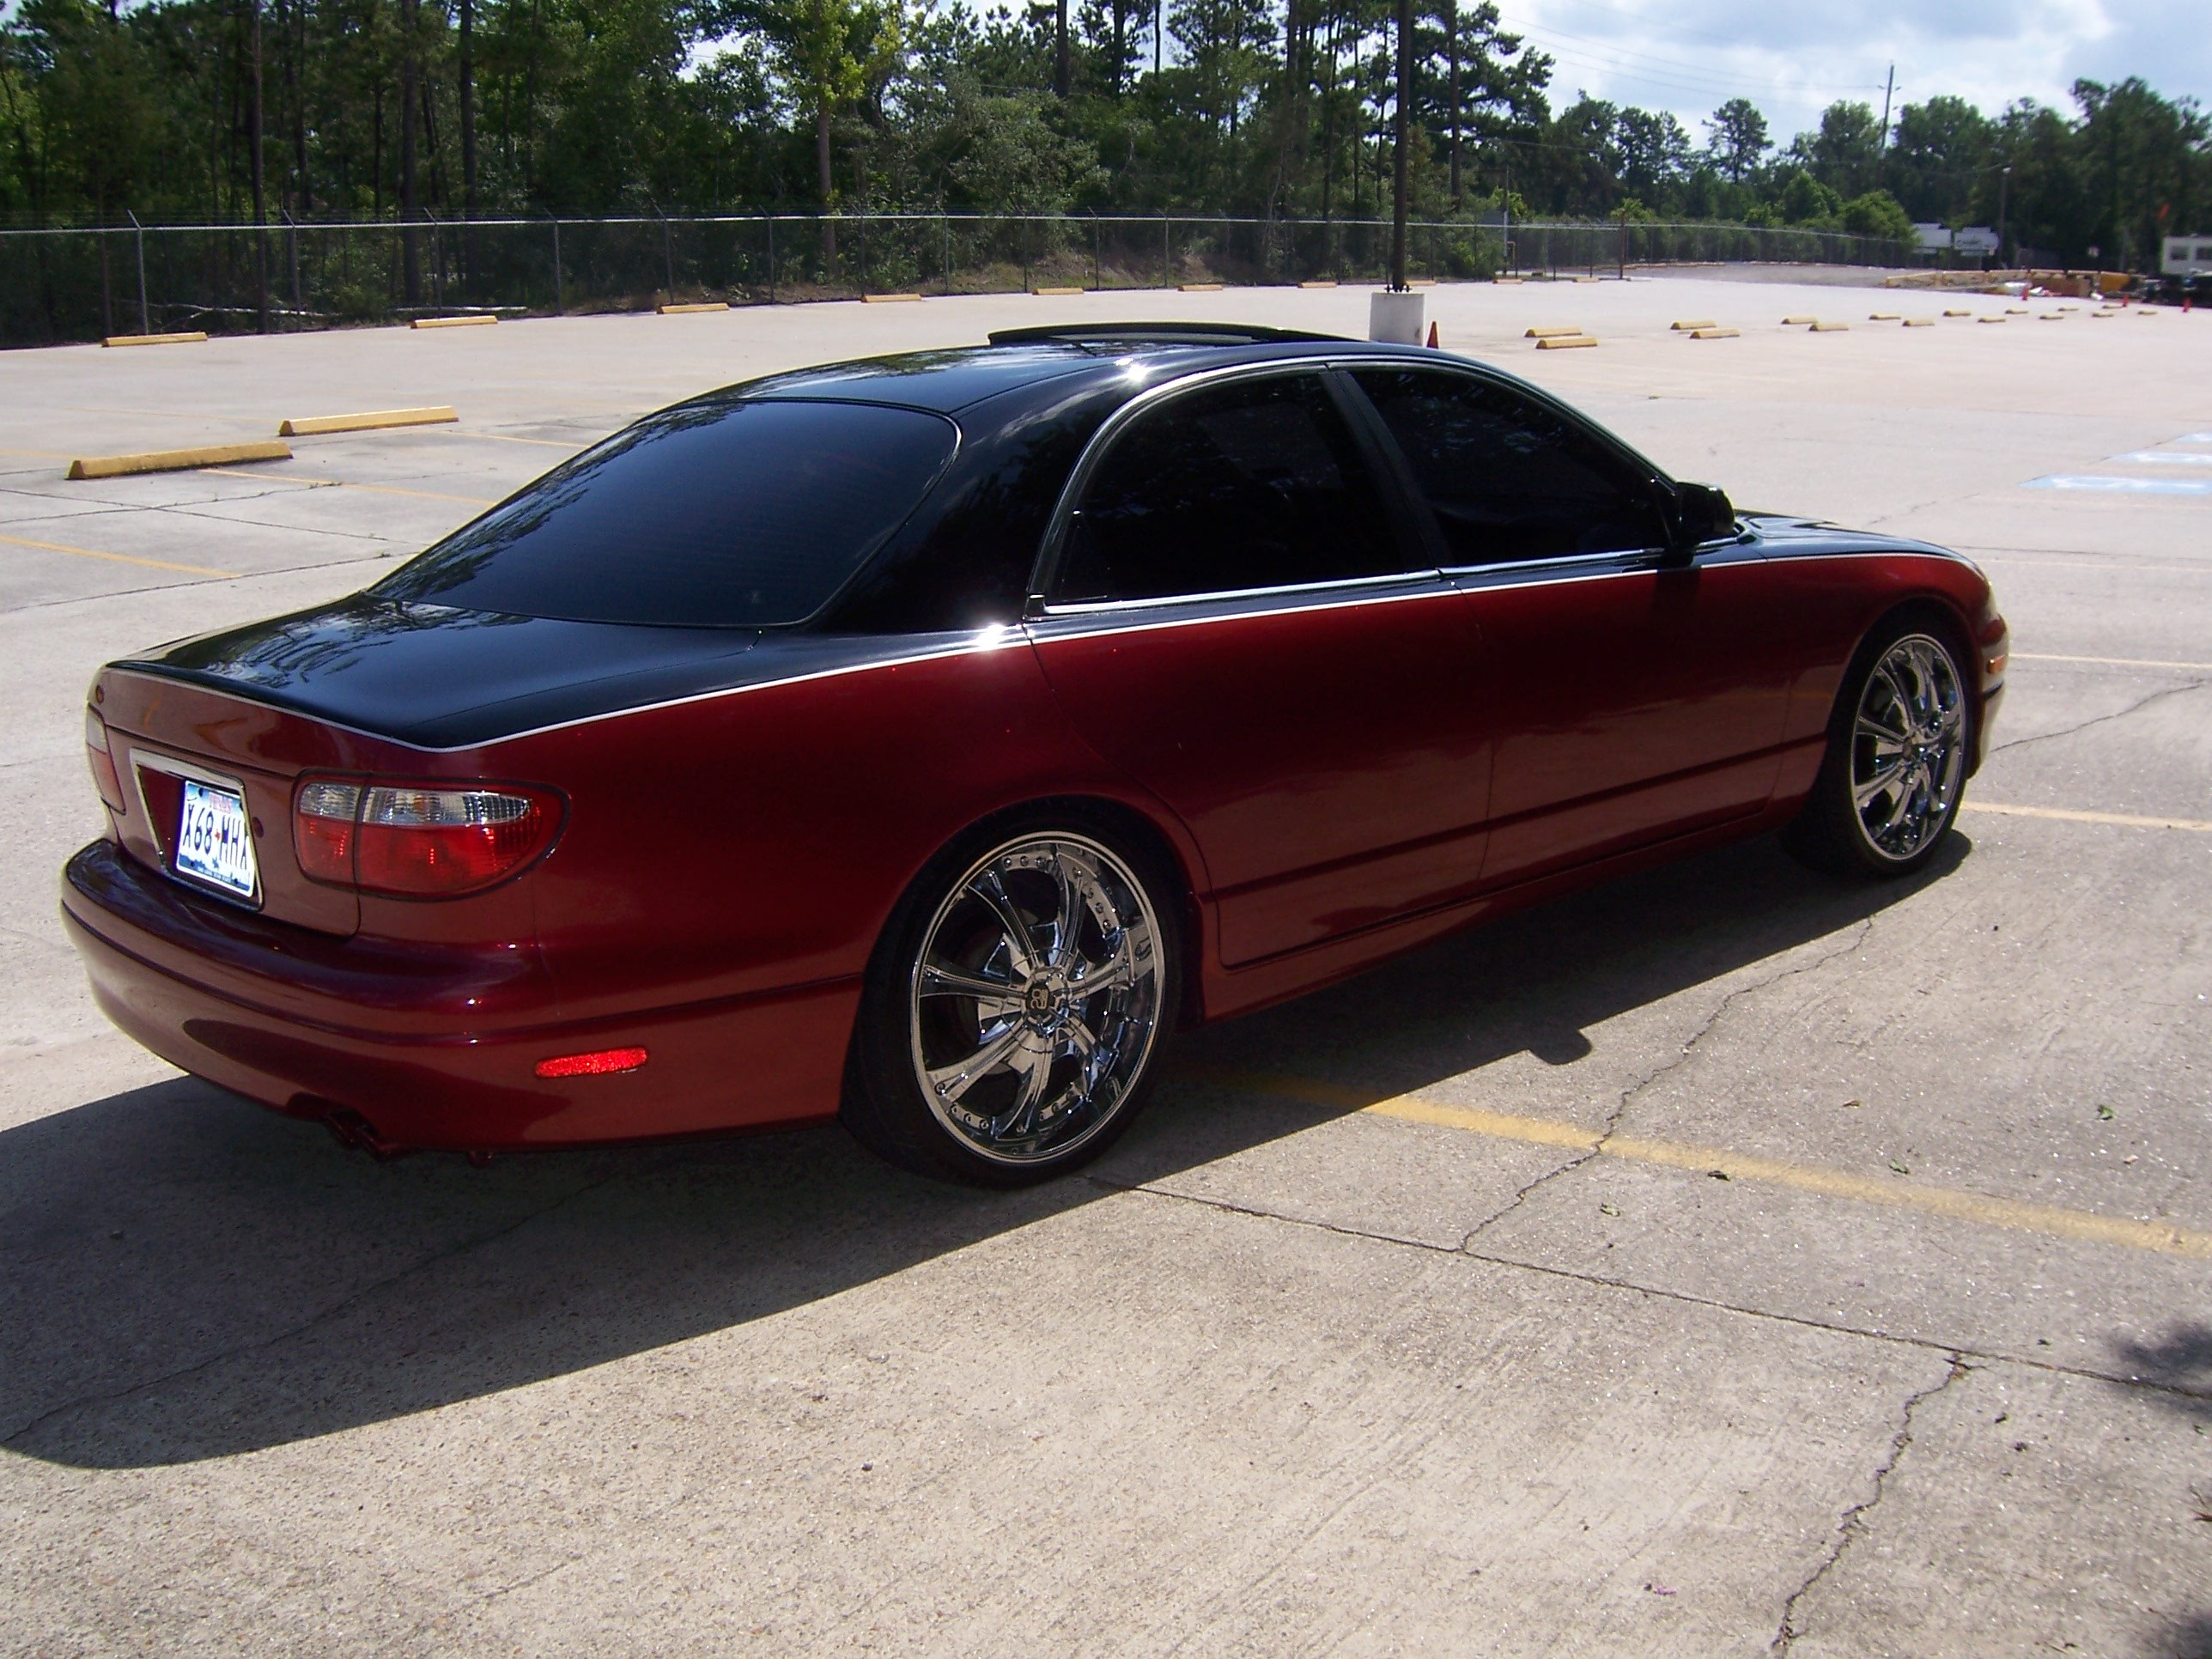 screenedup 2000 mazda millenia specs, photos, modification info at